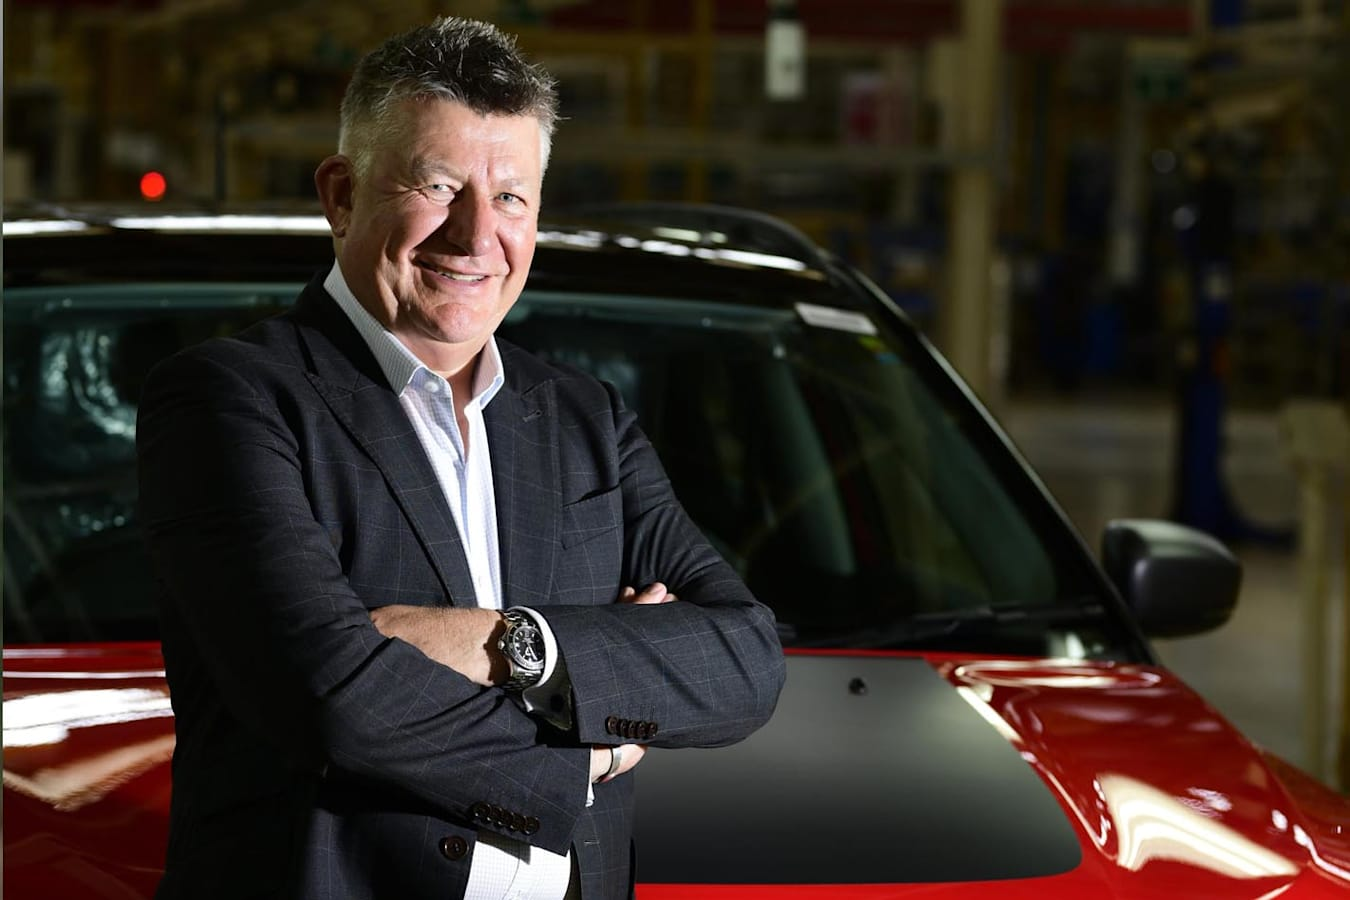 FCA managing director and CEO Kevin Flynn